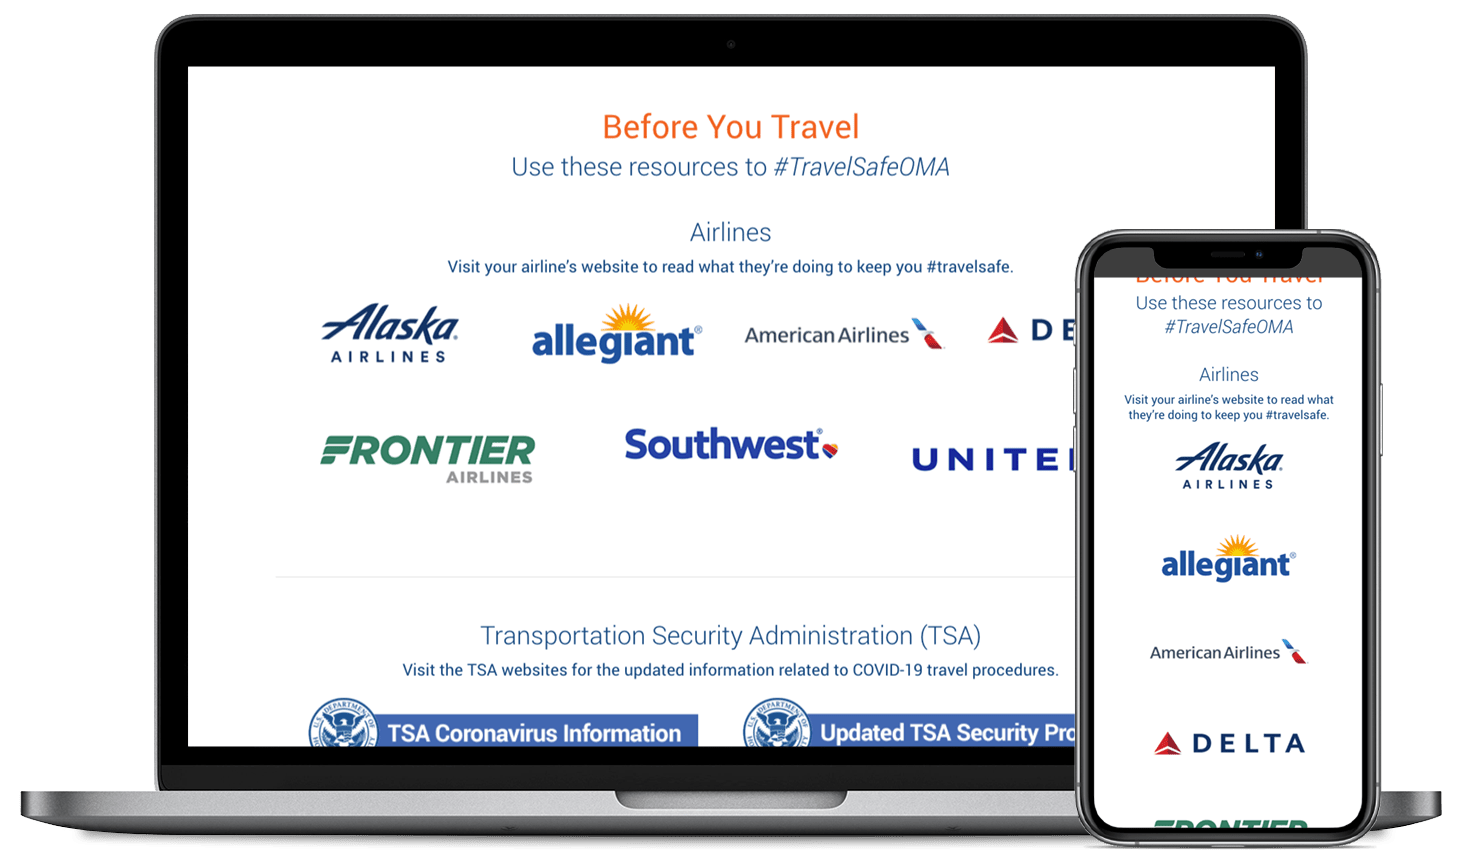 TravelSafeOMA-Website-Airlines